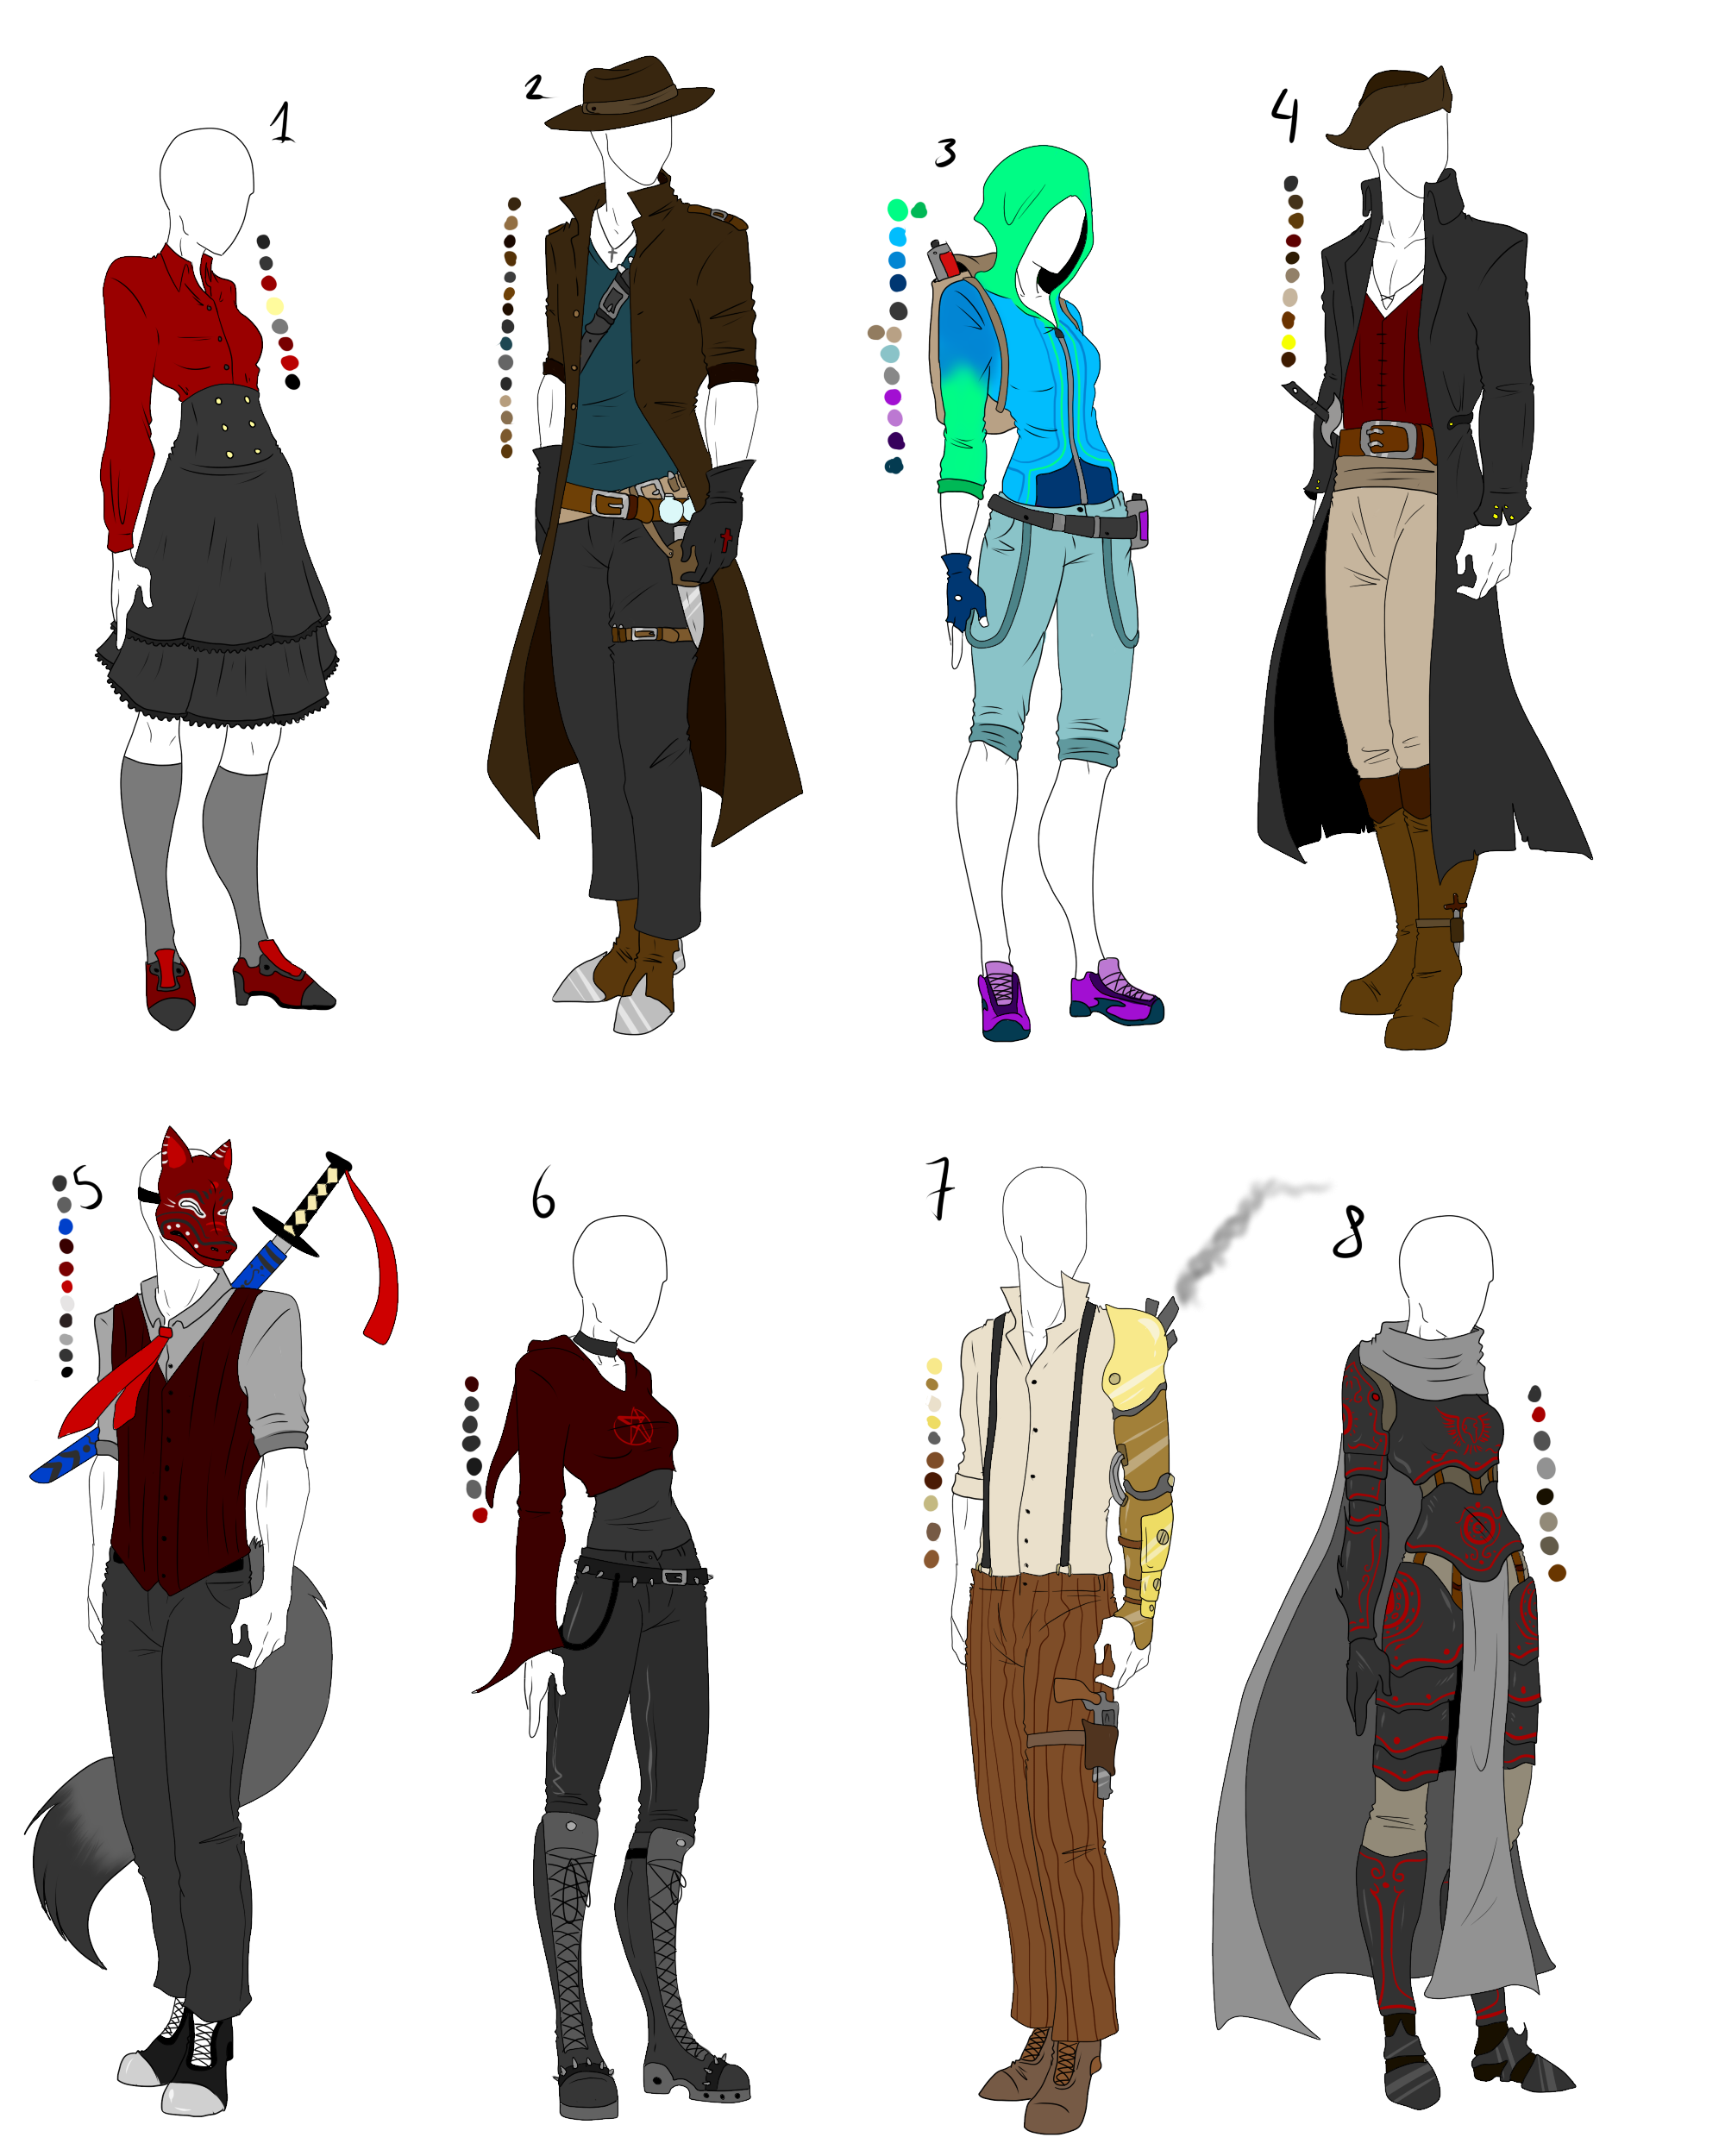 Mega Outfit Adopt Pack Sold Out By Shadowinkadopts Deviantart Com On Deviantart Anime Outfits Fantasy Clothing Art Clothes